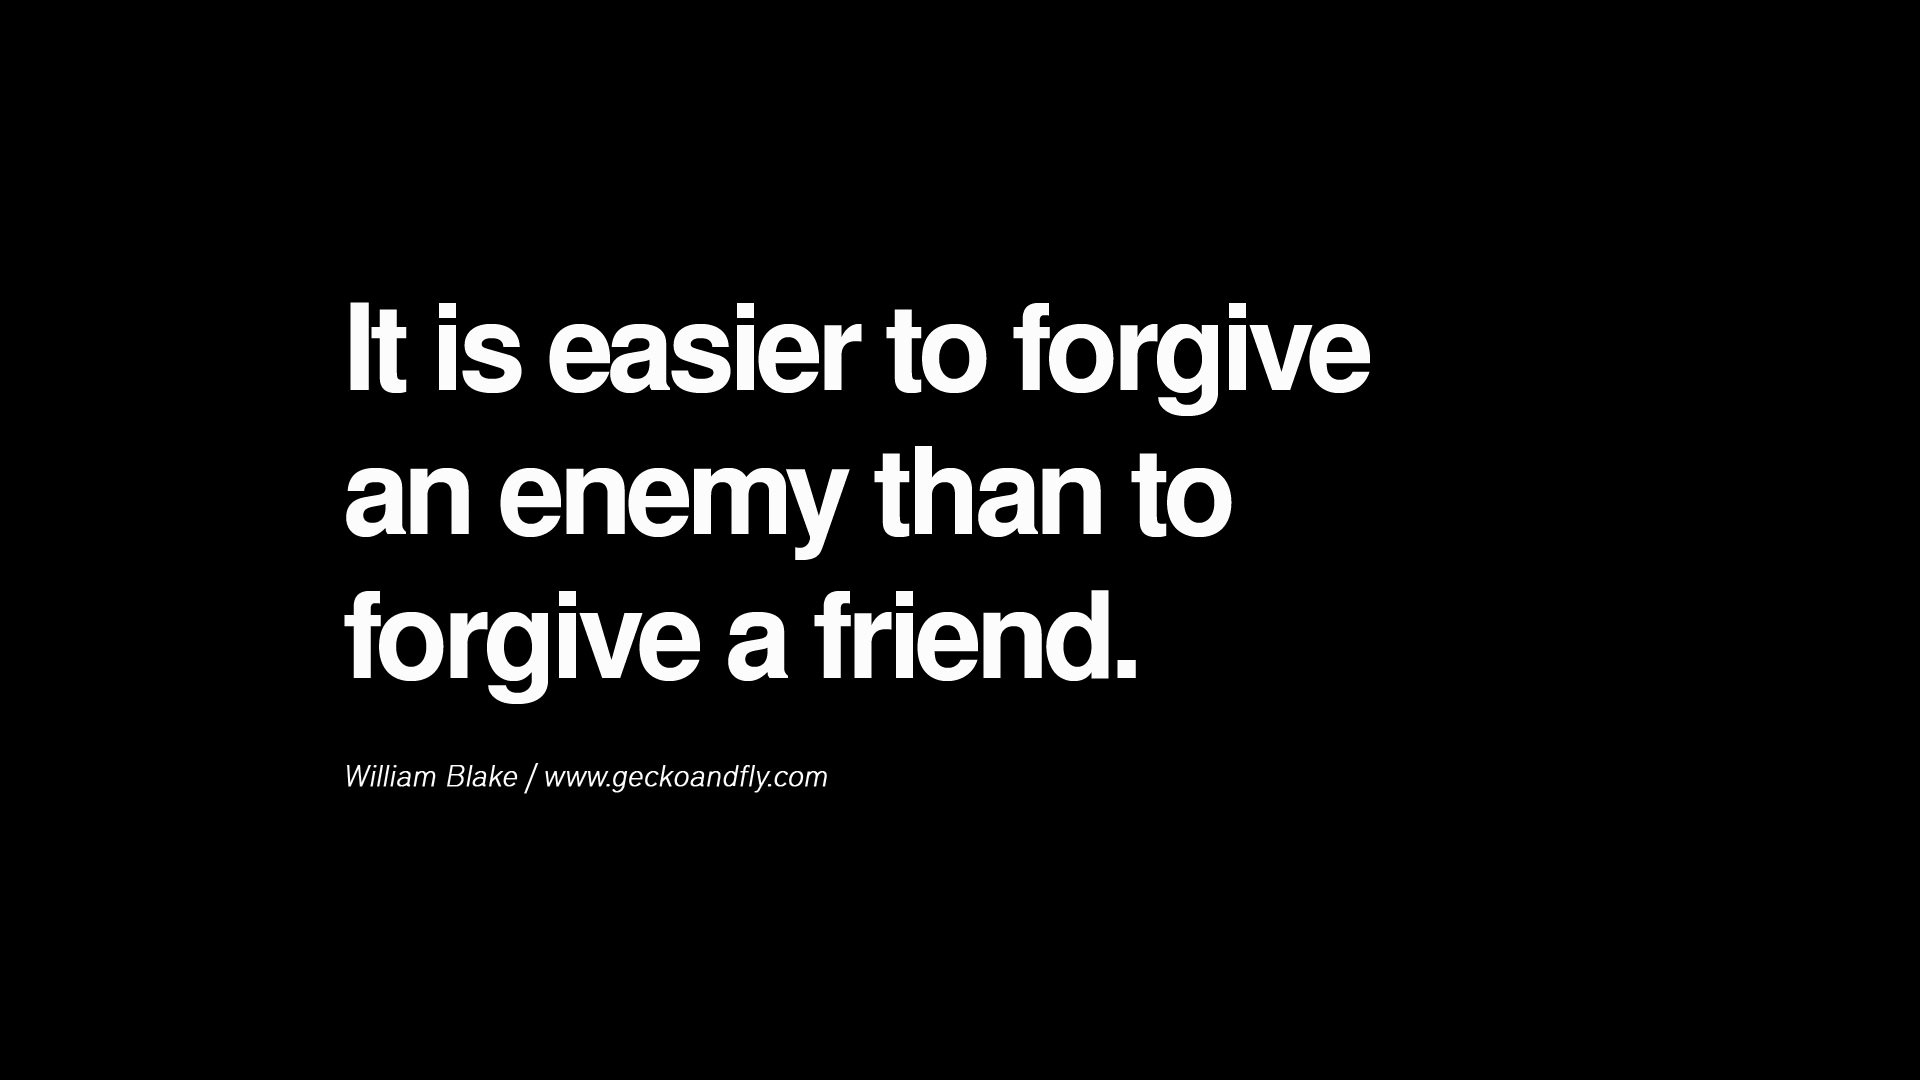 Friend Betrayal Quotes: Quotes About Friendship Betrayal. QuotesGram